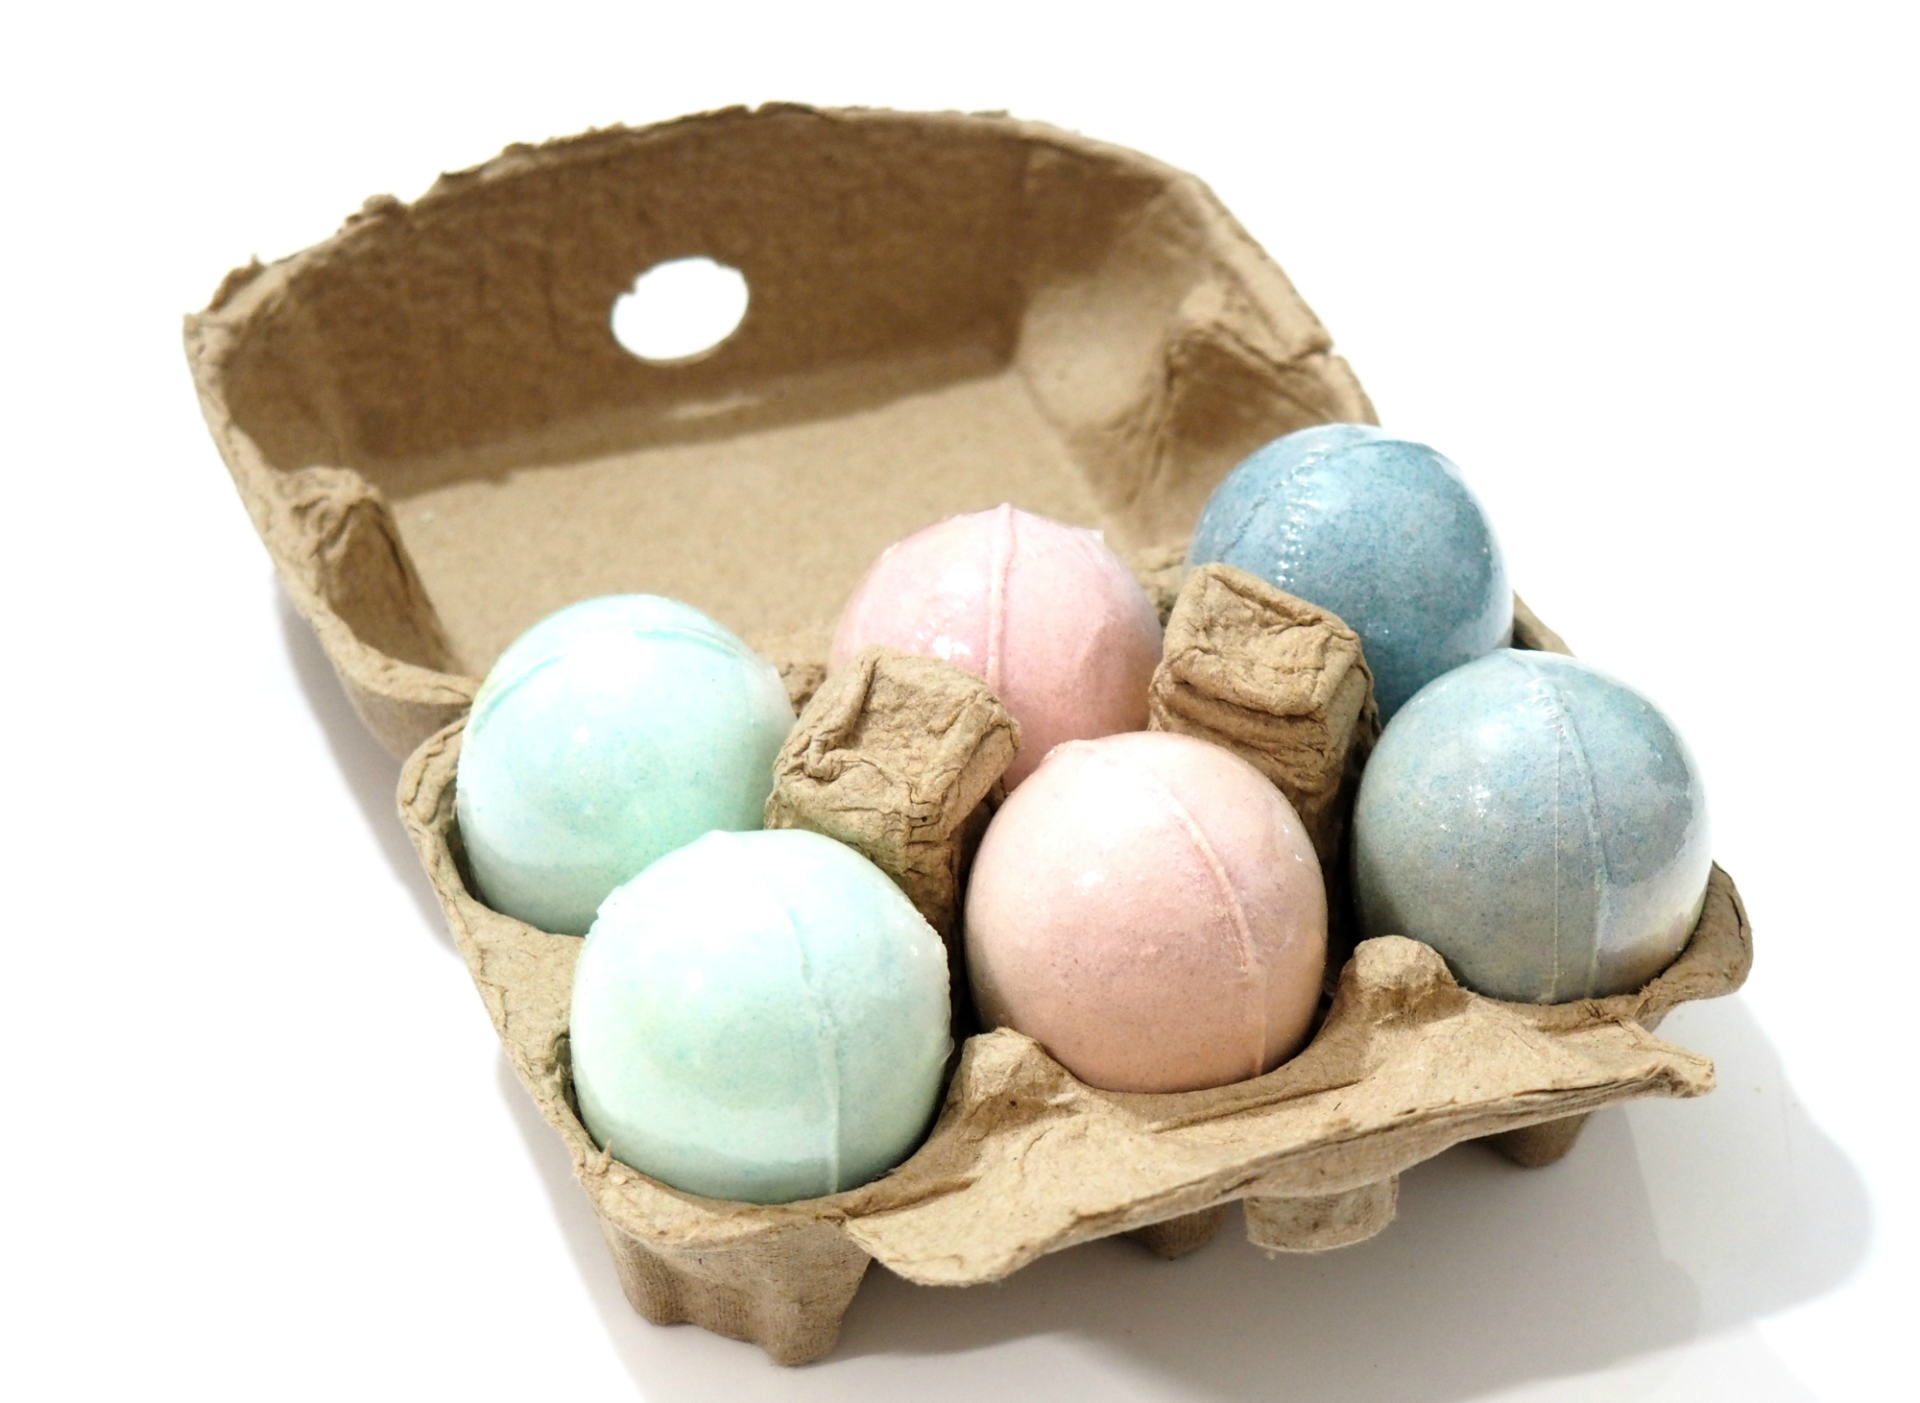 Mad Beauty Egg Shaped Bath Bombs